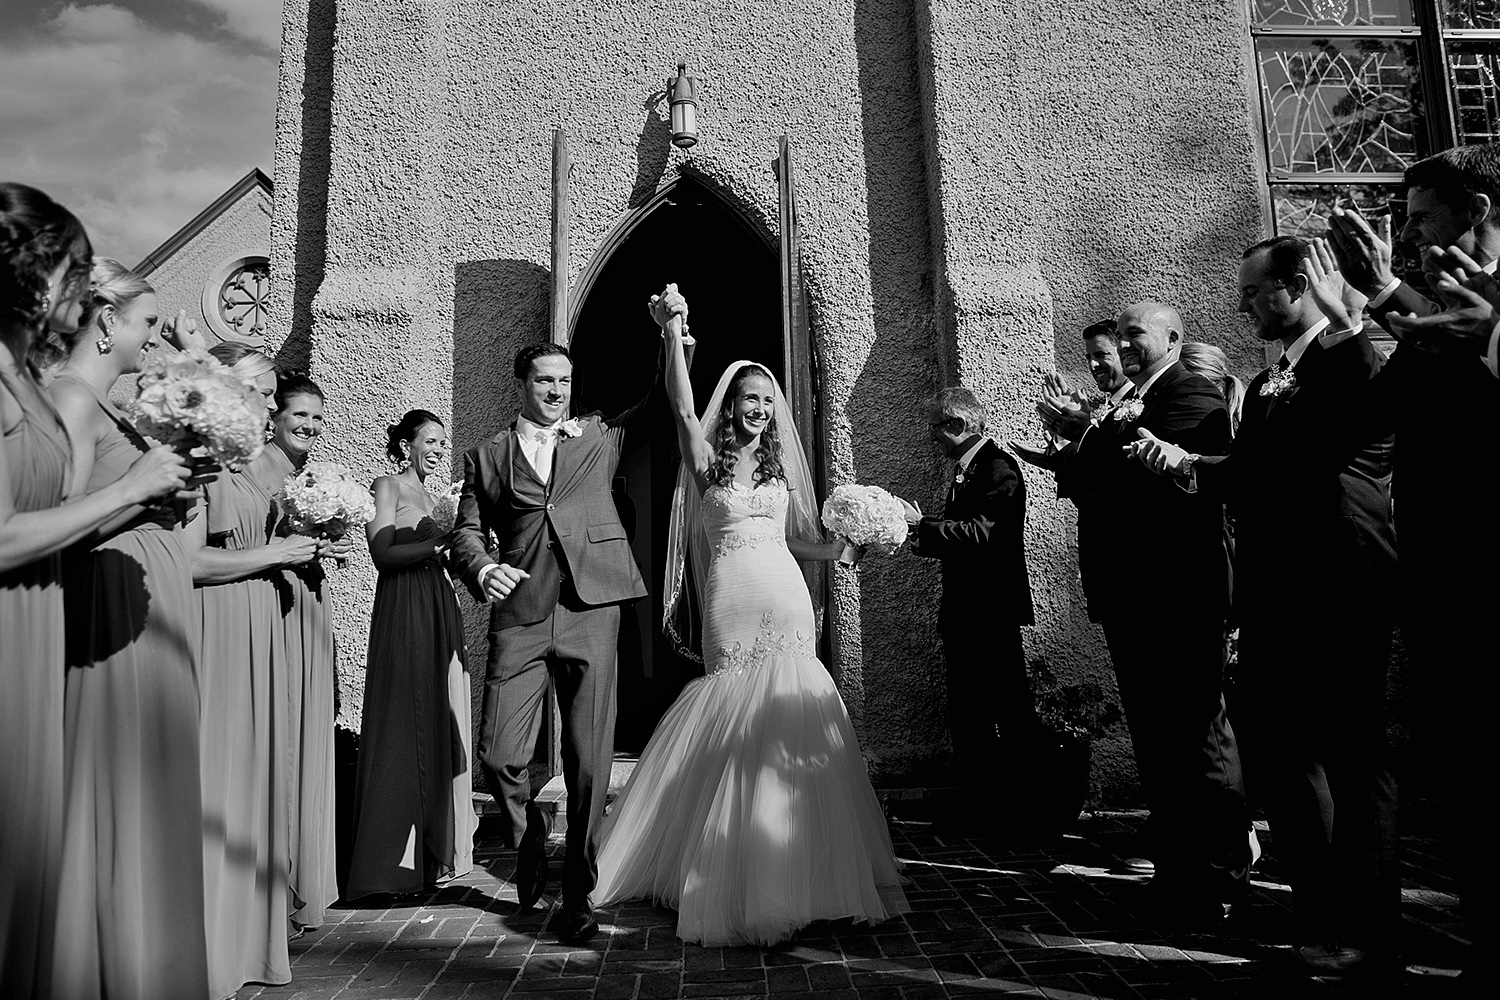 """Ken Pak is the man when it comes to photography. Not only does he take amazing and creative pictures but he's so much fun to work with. Ken captured our dream wedding perfectly and I couldn't have asked for anything better. We will definitely be using him again in the future. I highly recommend hiring Ken Pak Photography for any occasion. He is simply the best.""  Kelly & Matt 